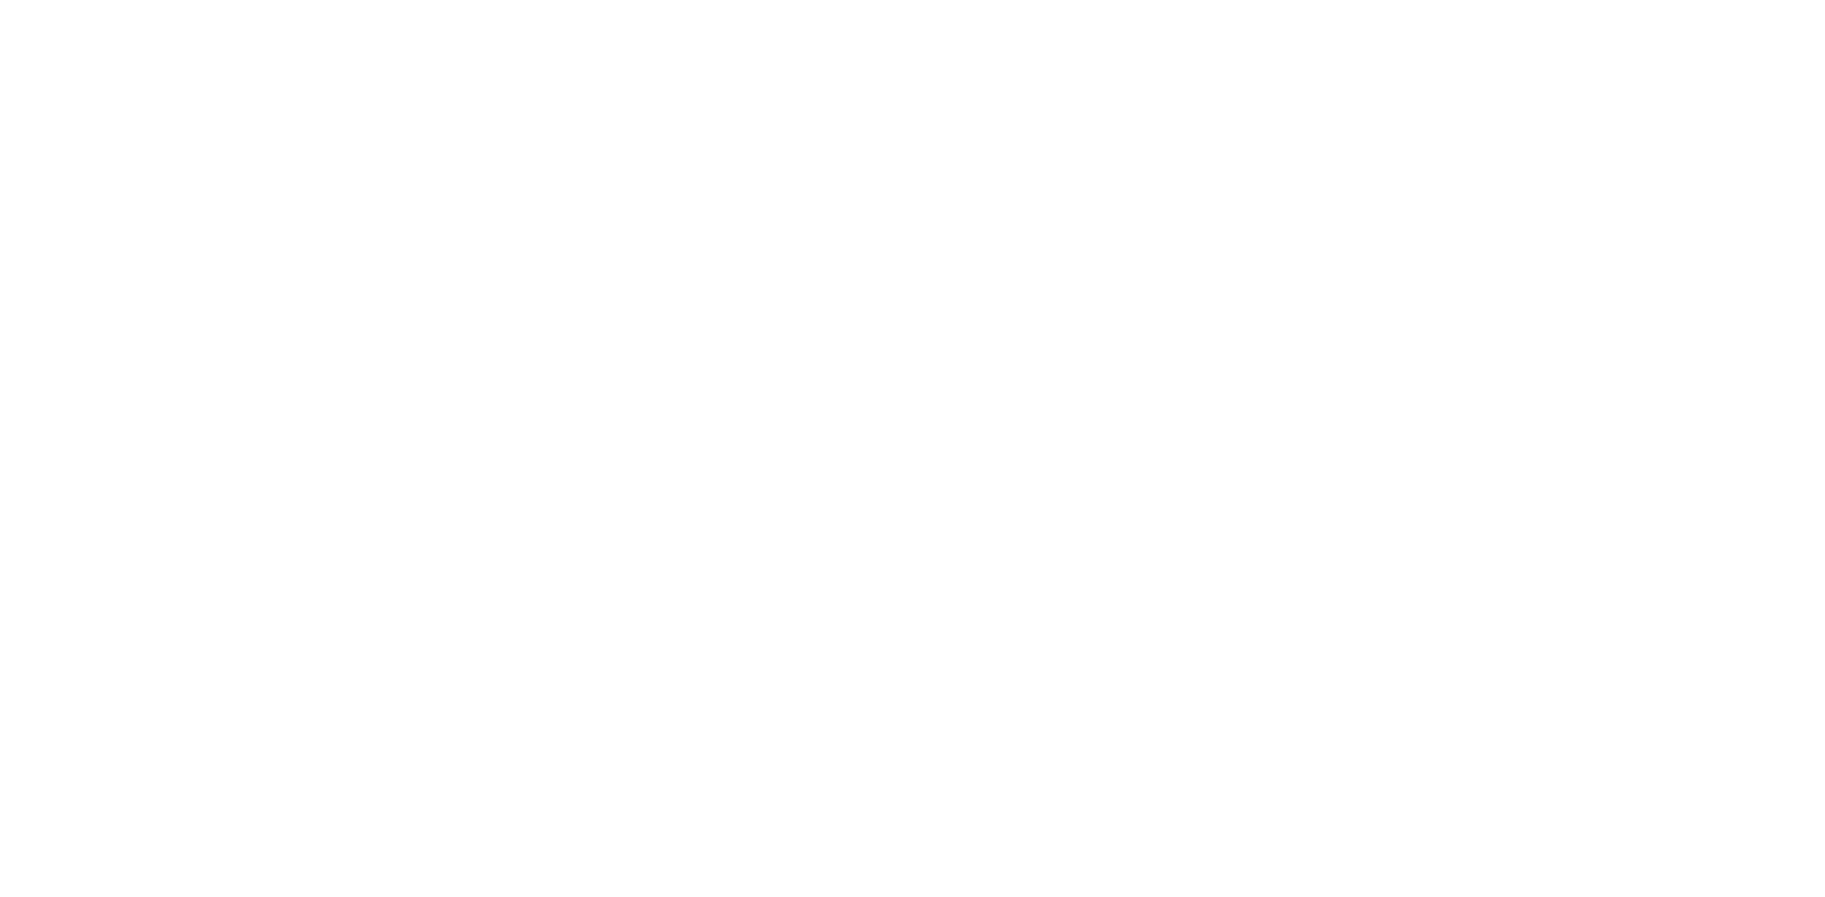 Cottonwood Court